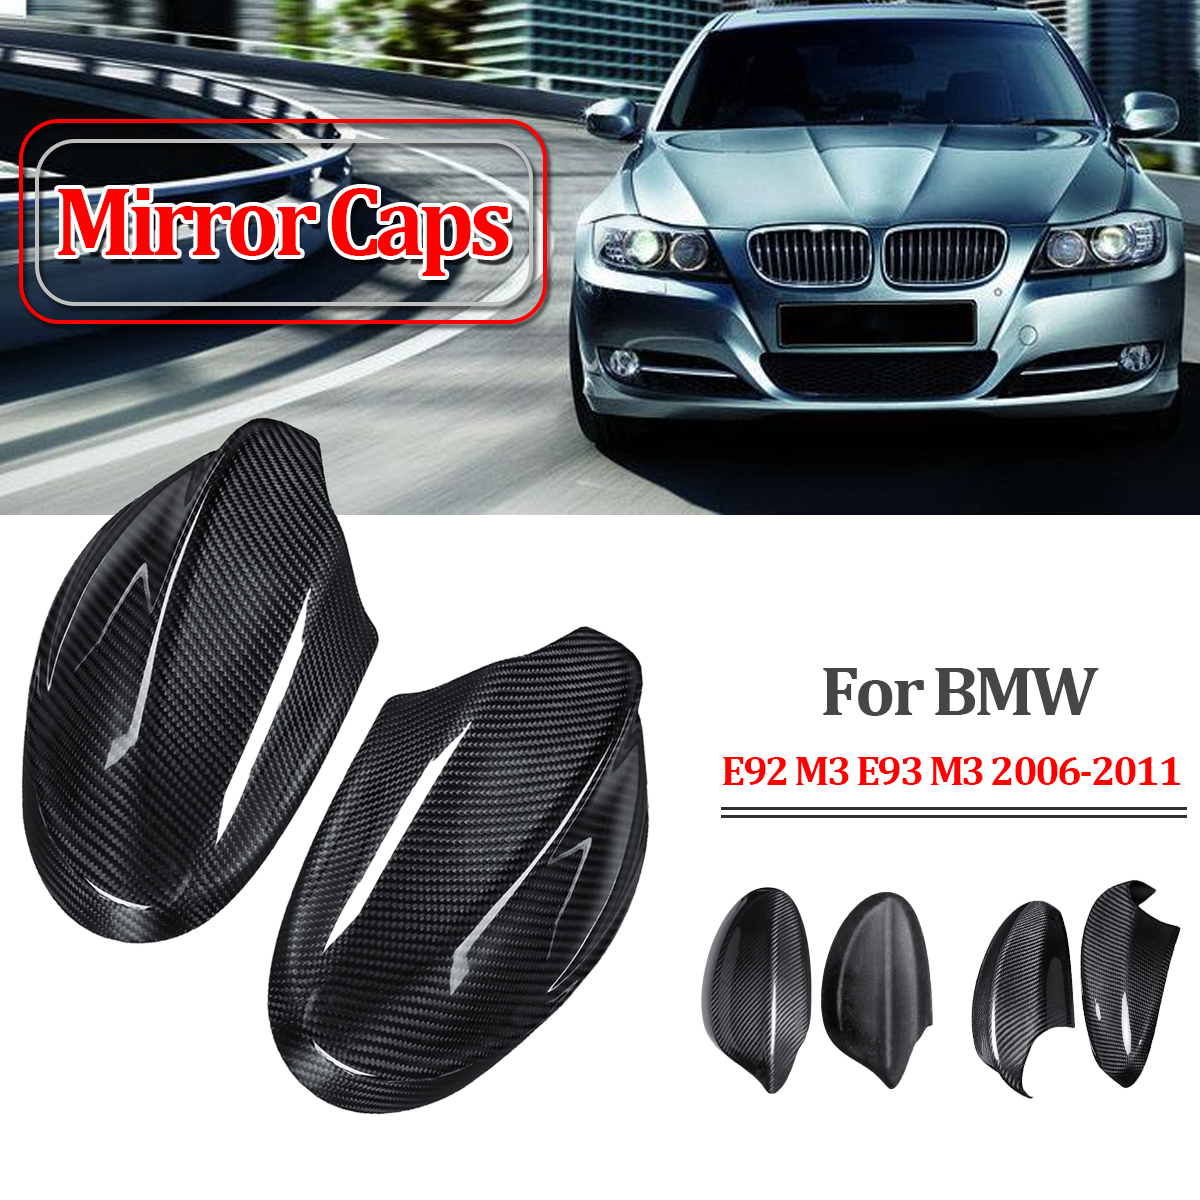 2PCs Carbon Fiber Side Mirror Covers Case For BMW Pre-facelift E92 M3 E93 M3 06-112PCs Carbon Fiber Side Mirror Covers Case For BMW Pre-facelift E92 M3 E93 M3 06-11